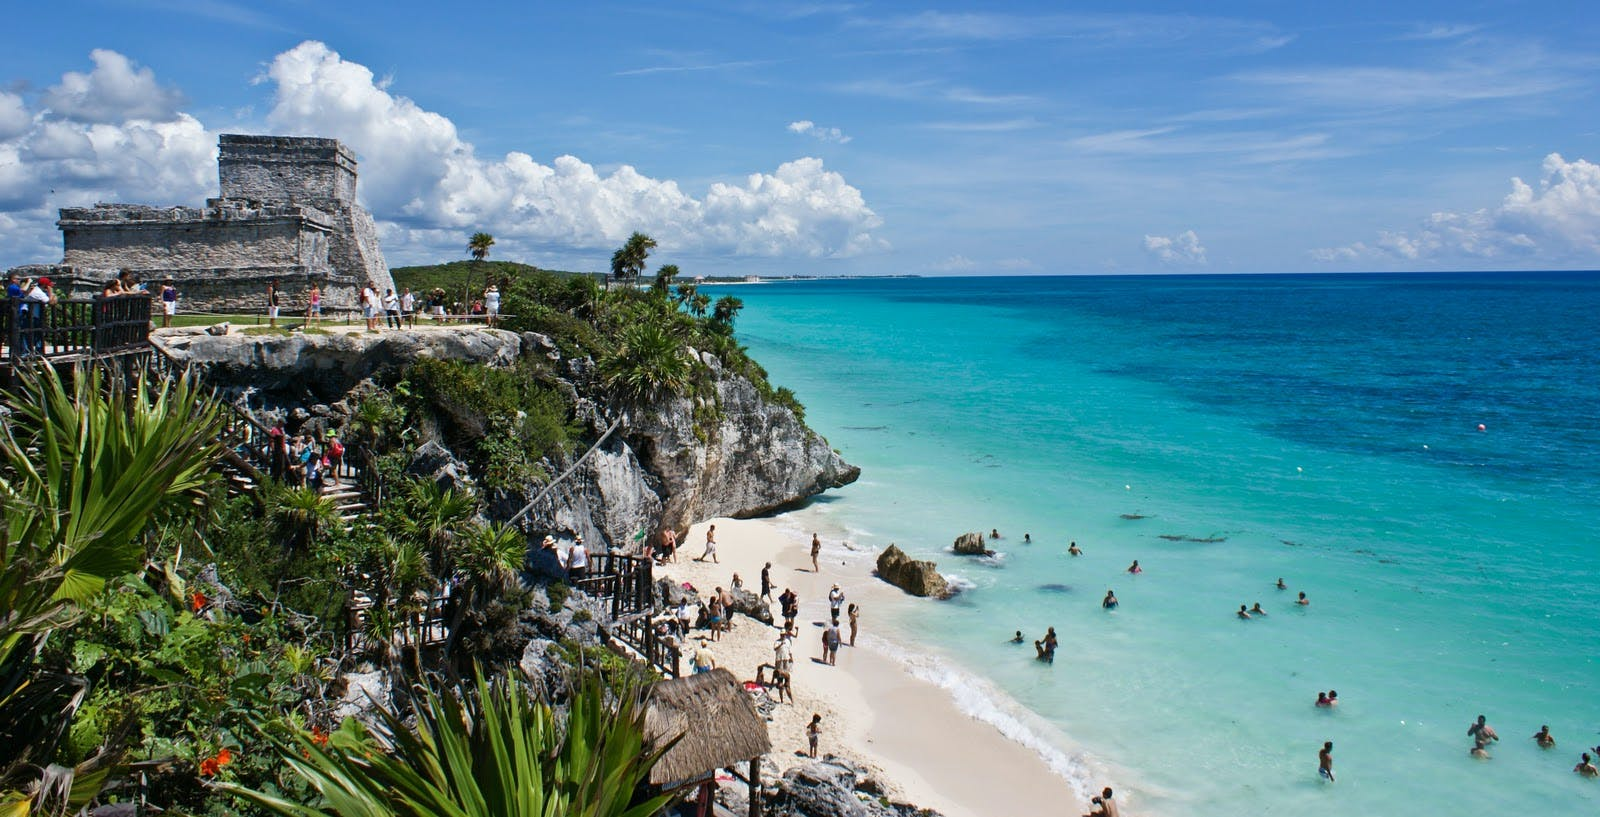 Private tour of Chichen Itza, Coba and Tulum with lunch and 'cenote' swim